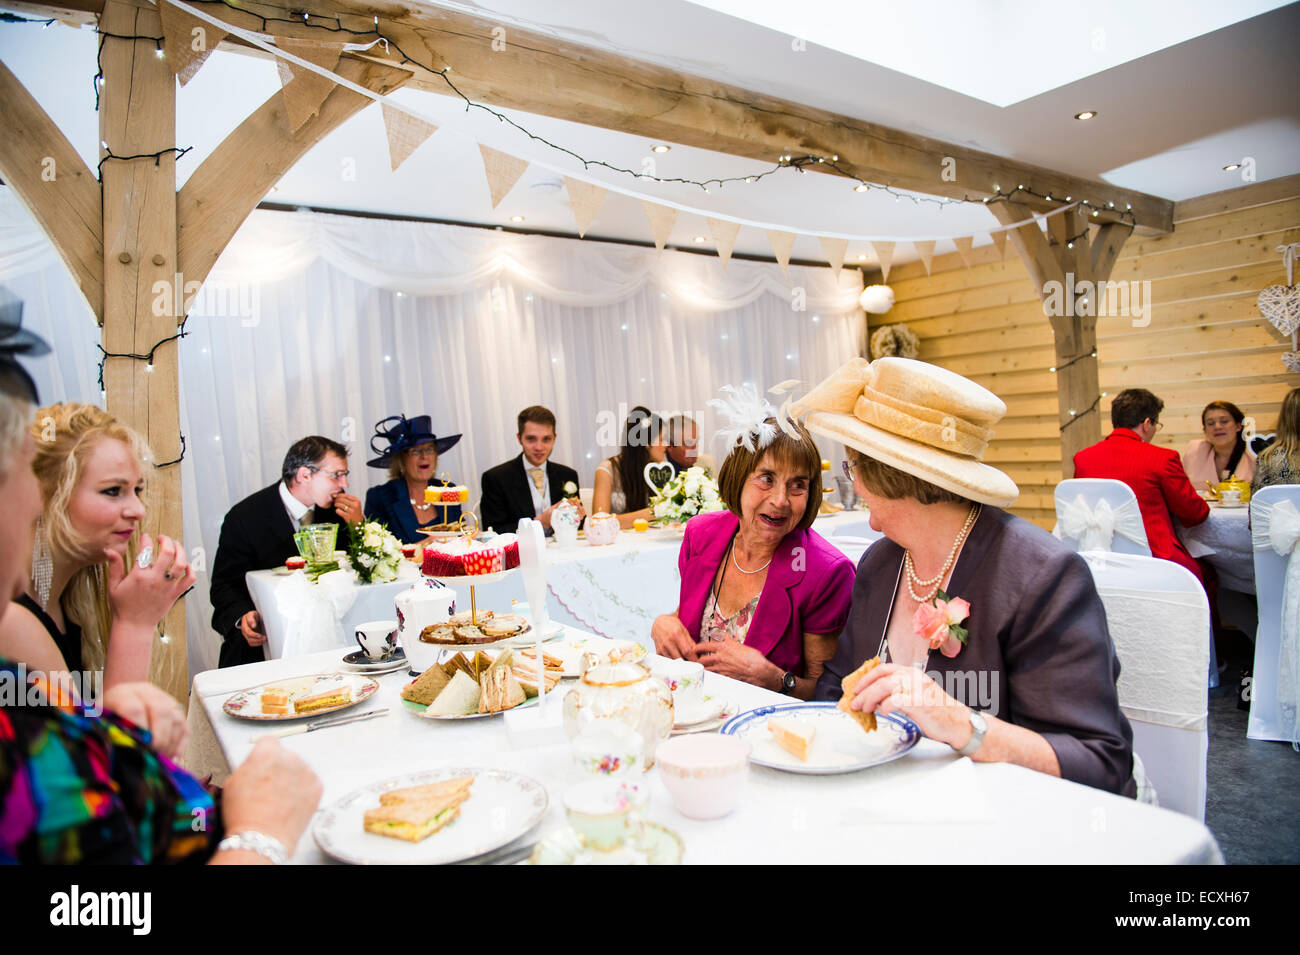 Getting Married Wedding Day Uk People Enjoying Themselves Eating